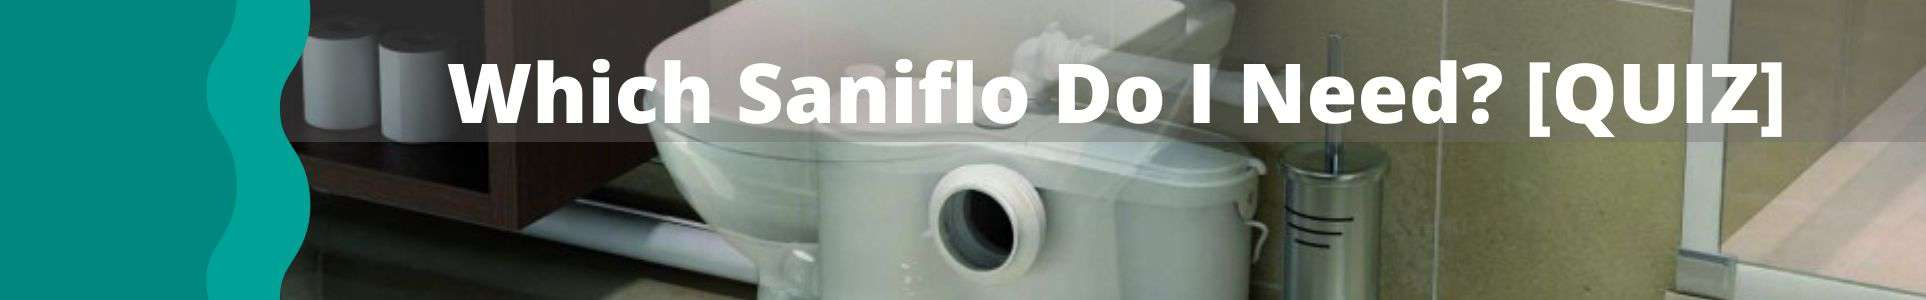 which saniflo quiz